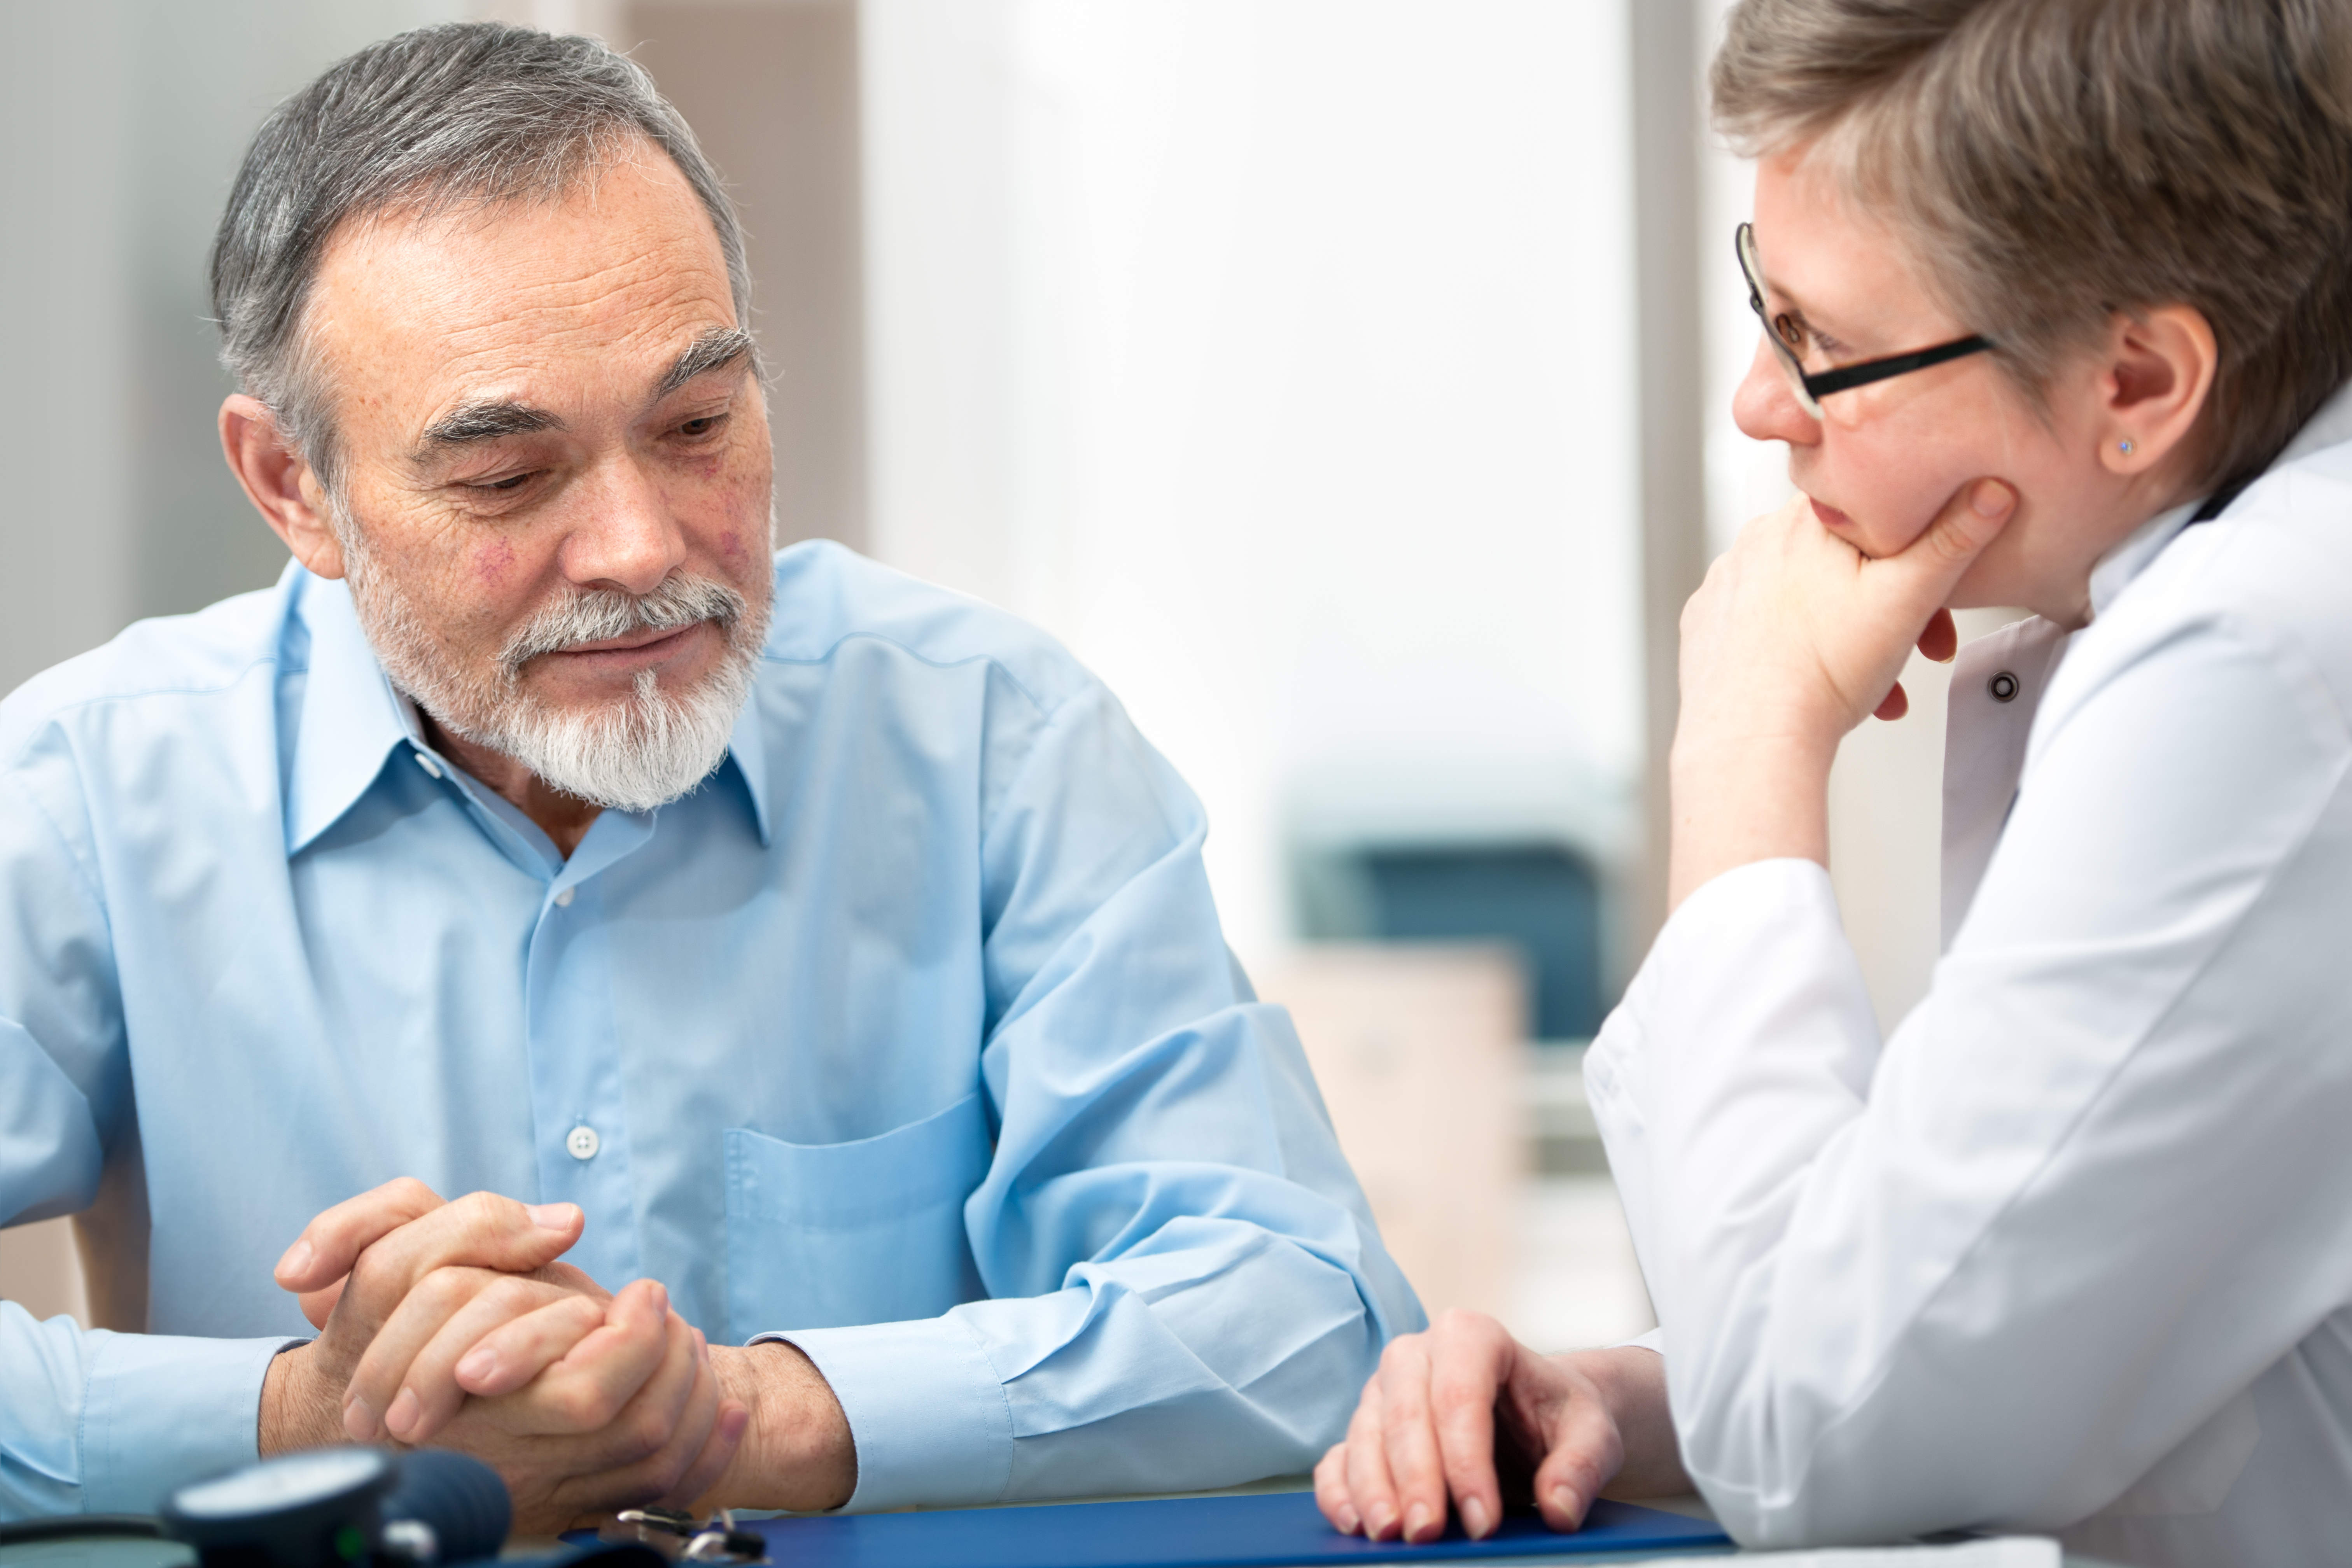 male-patient-and-doctor-shutterstock_130170572